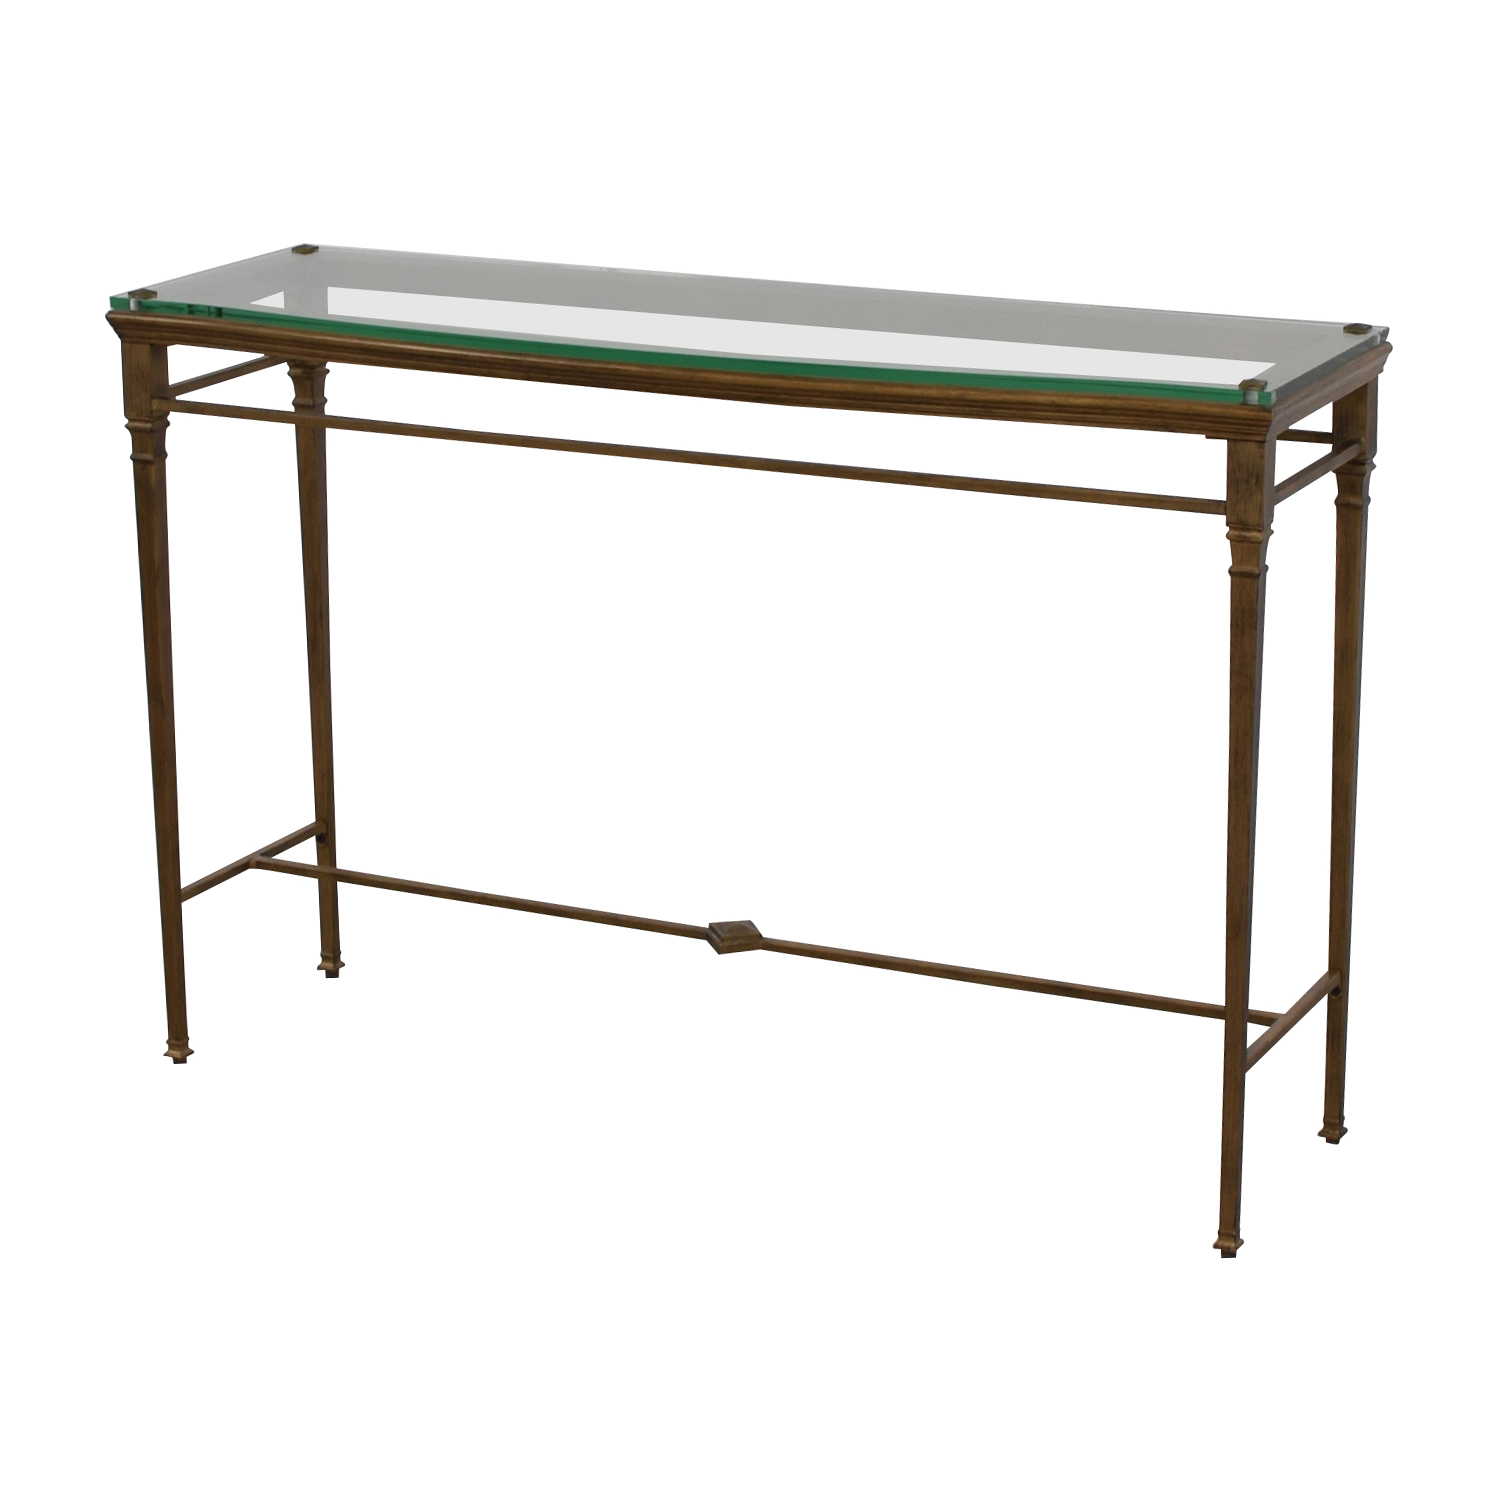 Foyer Table Used : Off pier foyer metal and glass entry table